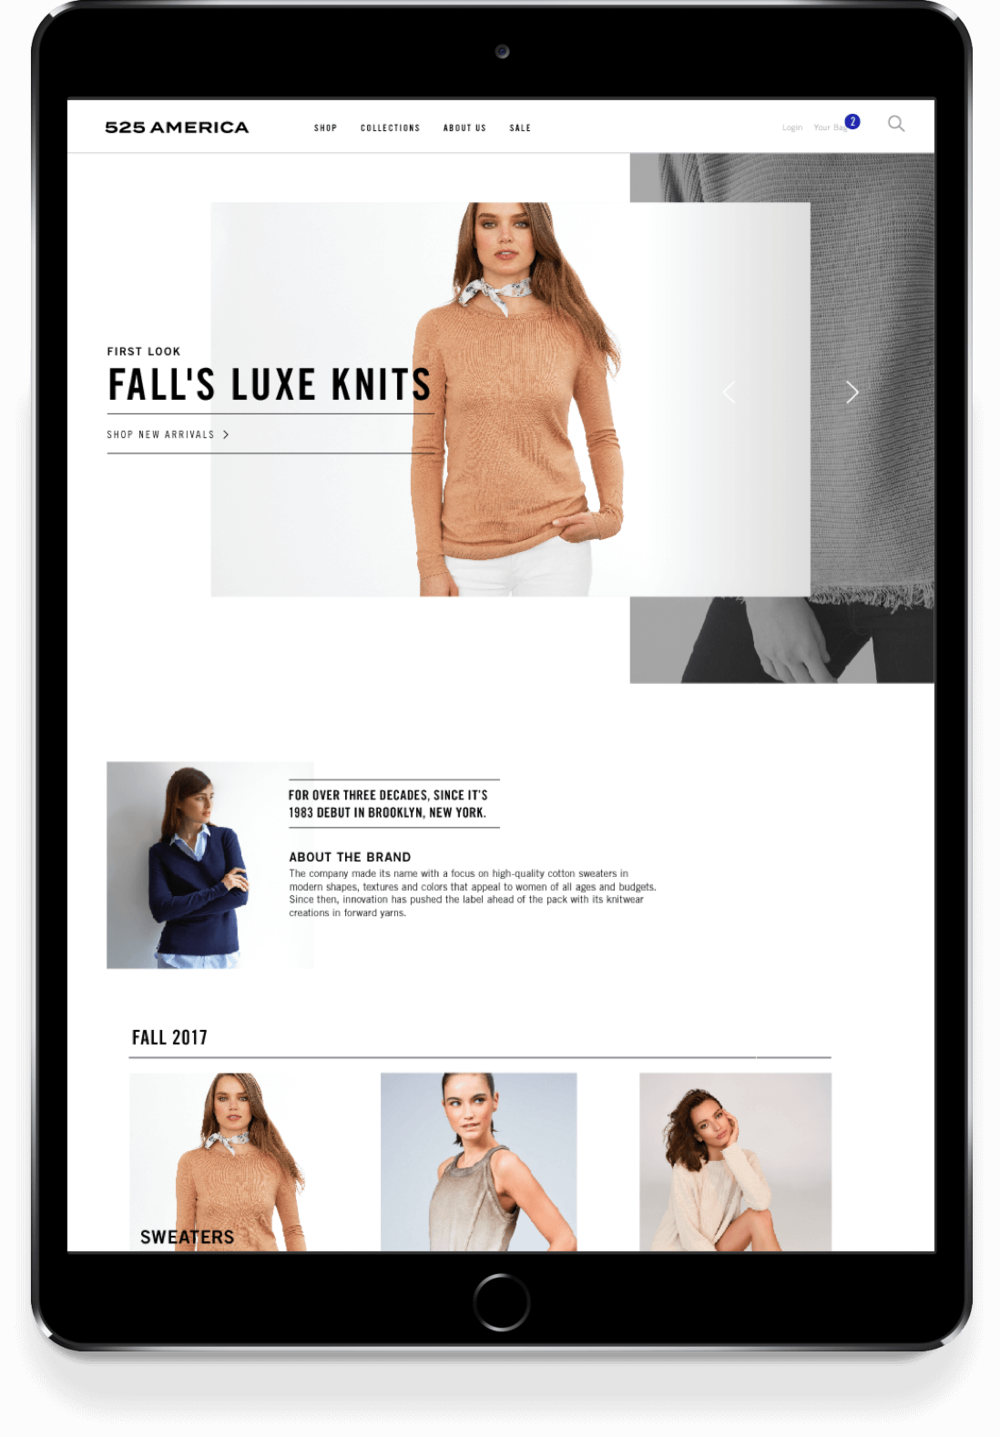 525 America responsive website displayed on iPad with latest collections of sweaters